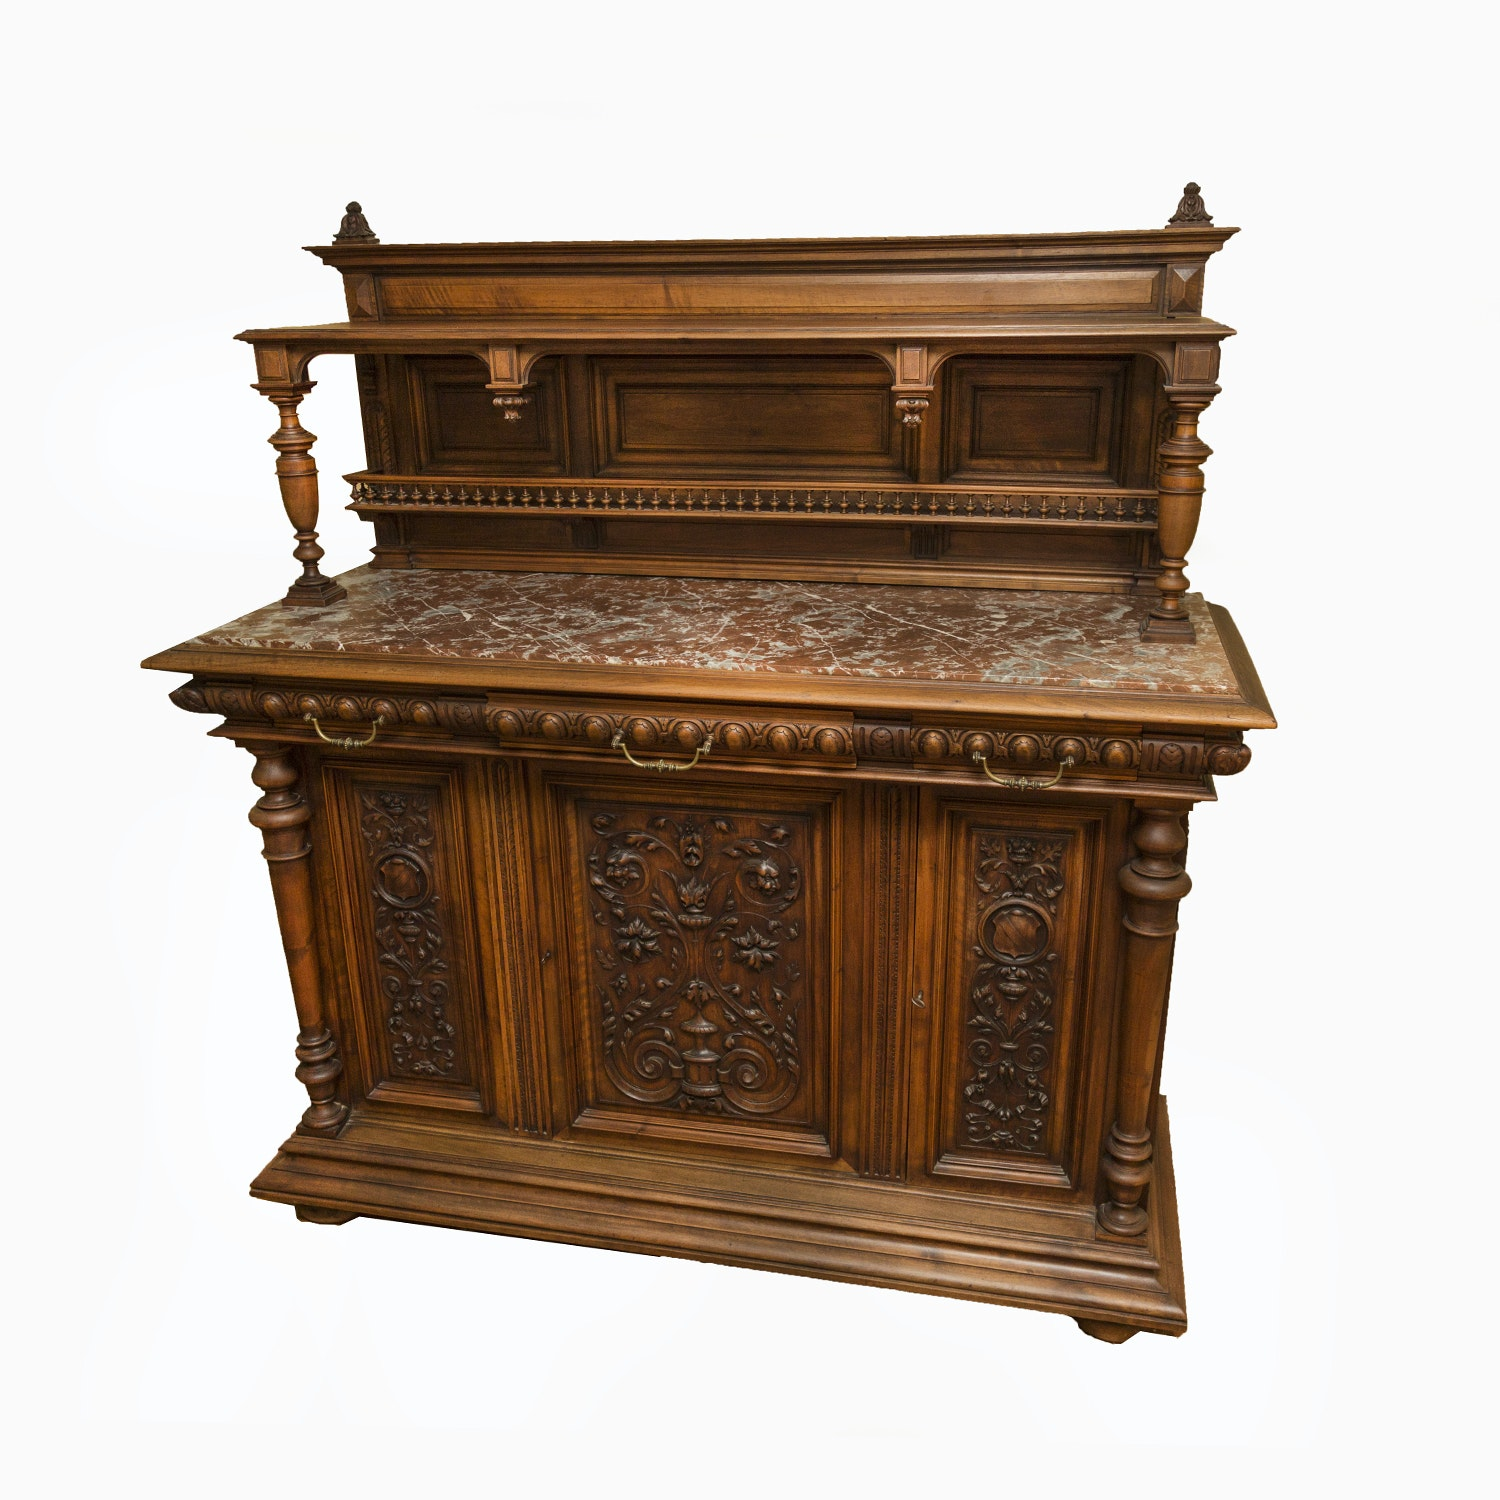 Antique French Renaissance Revival Style Walnut Buffet